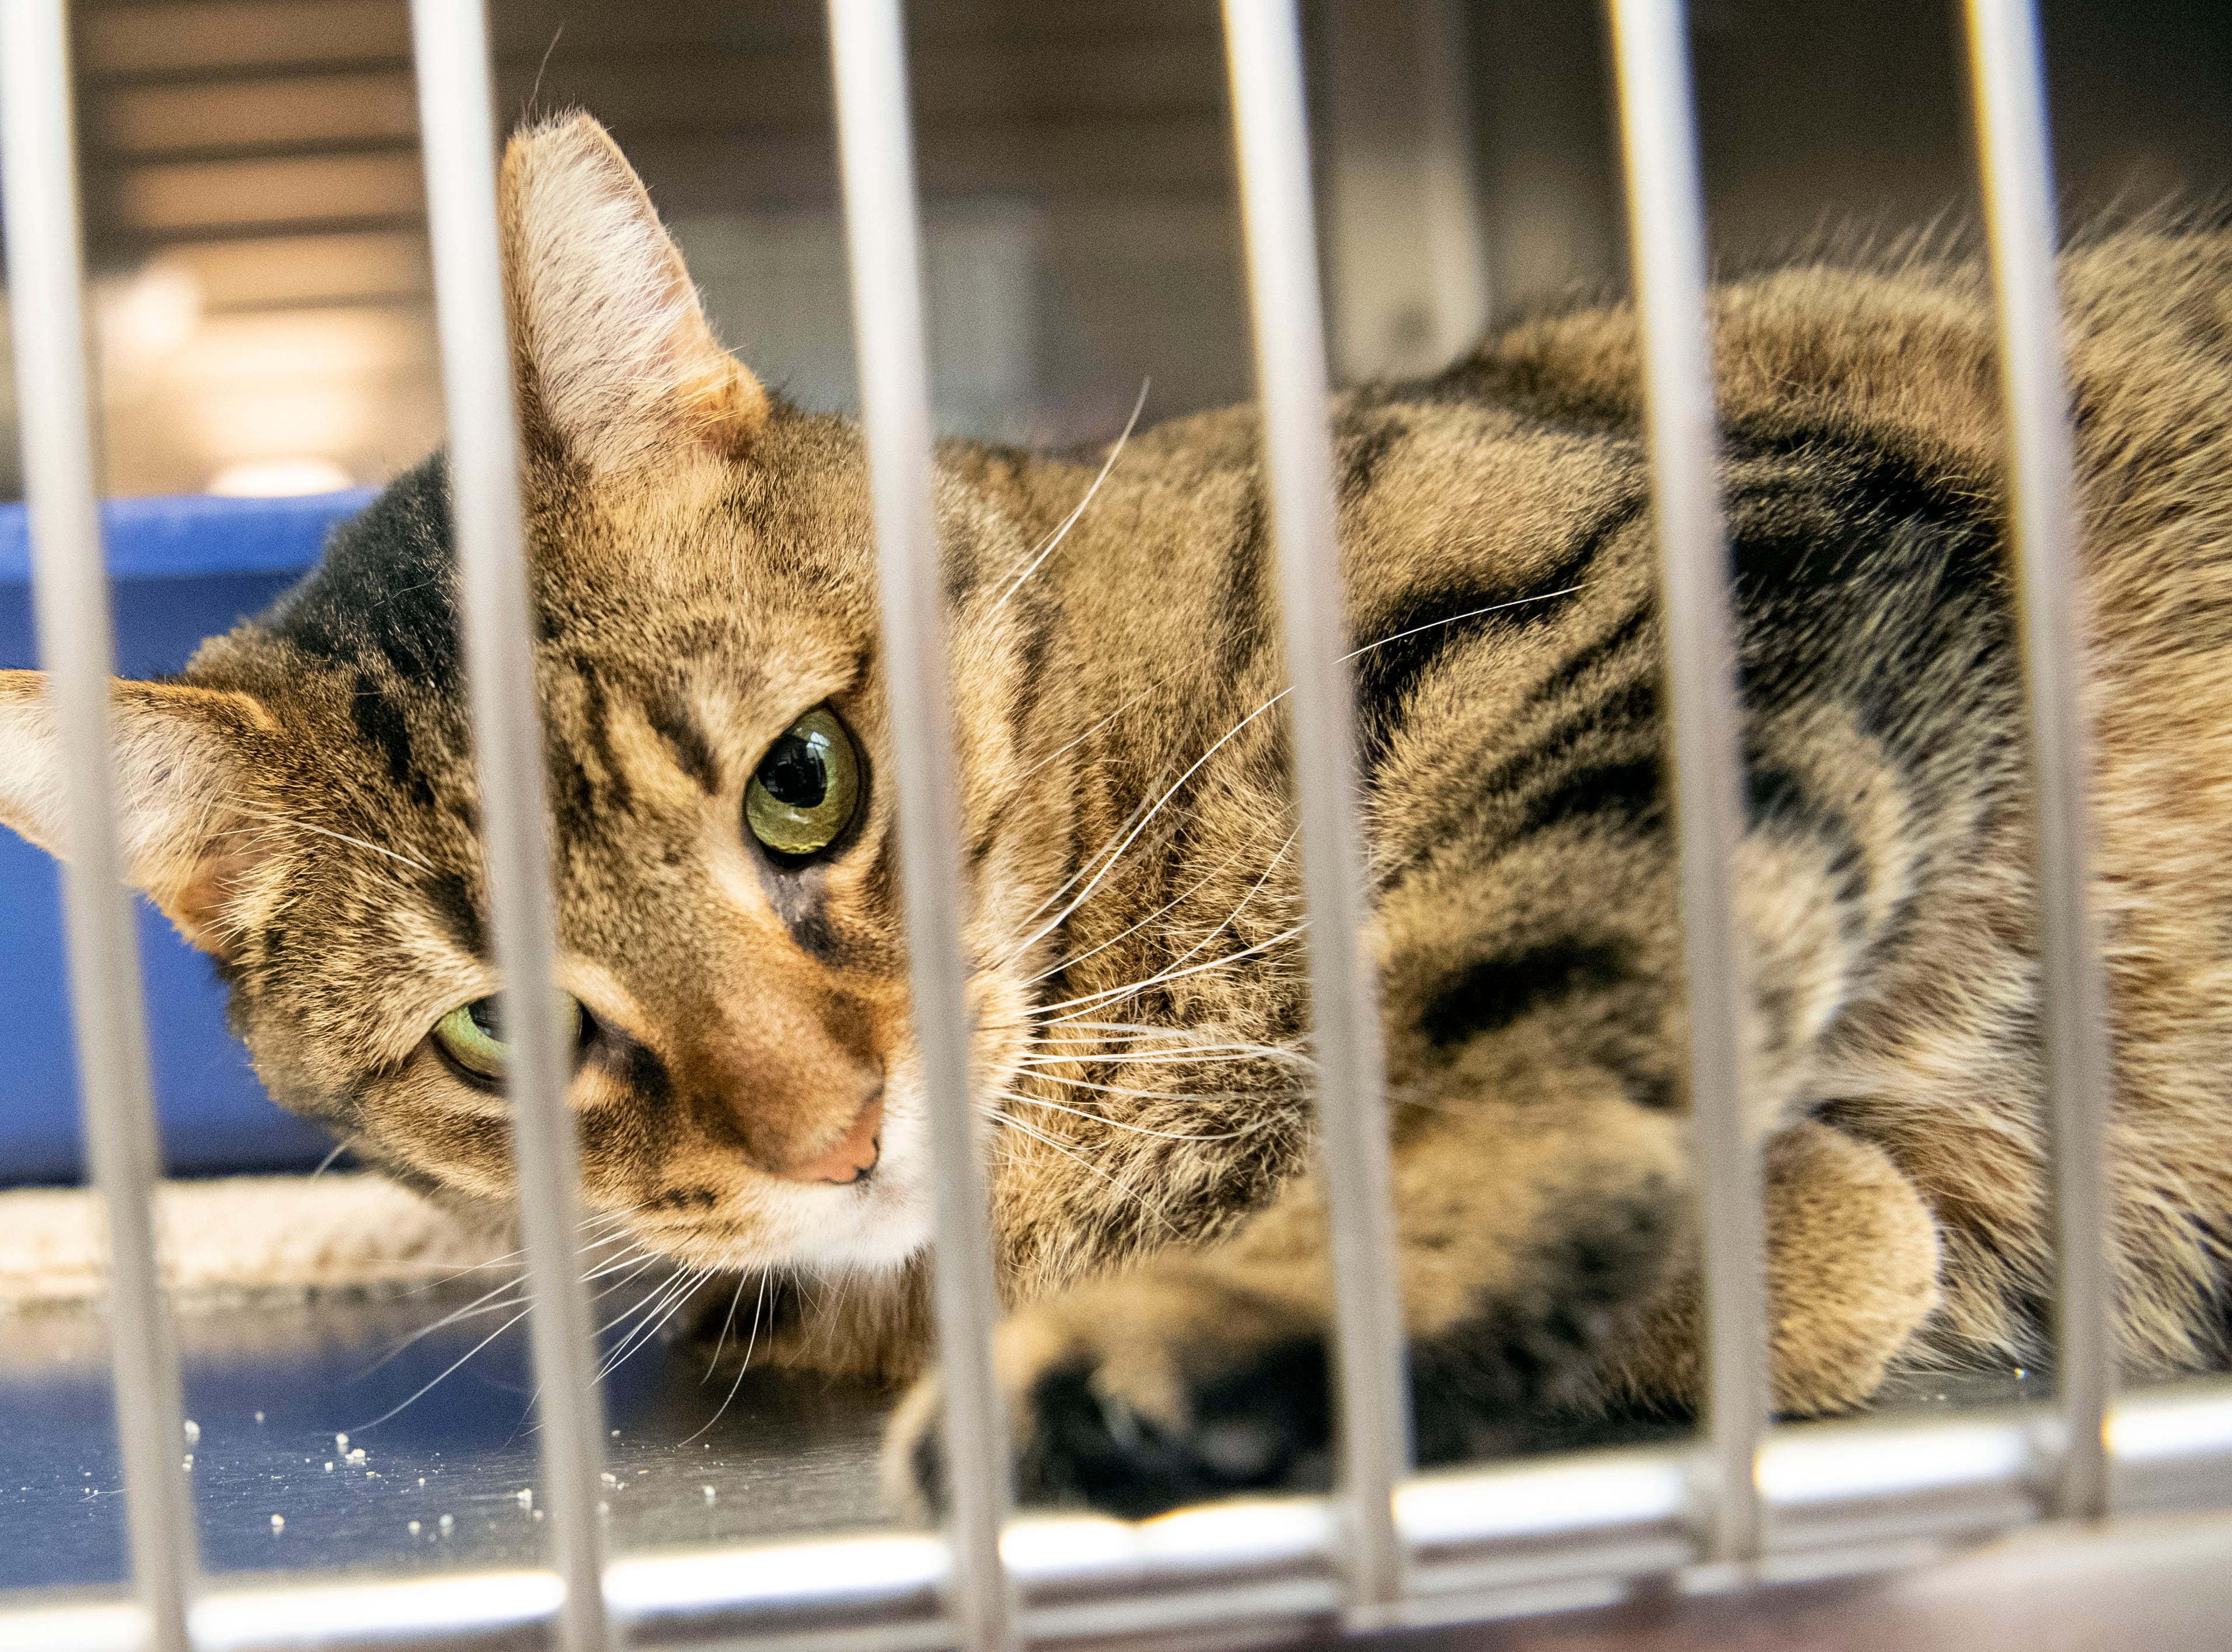 Marshmallow Popcorn, a 2-year old brown tabby, at the York County SPCA, Thursday, Feb. 7, 2019. She was found near the Galleria Mall in Springettsbury Township.